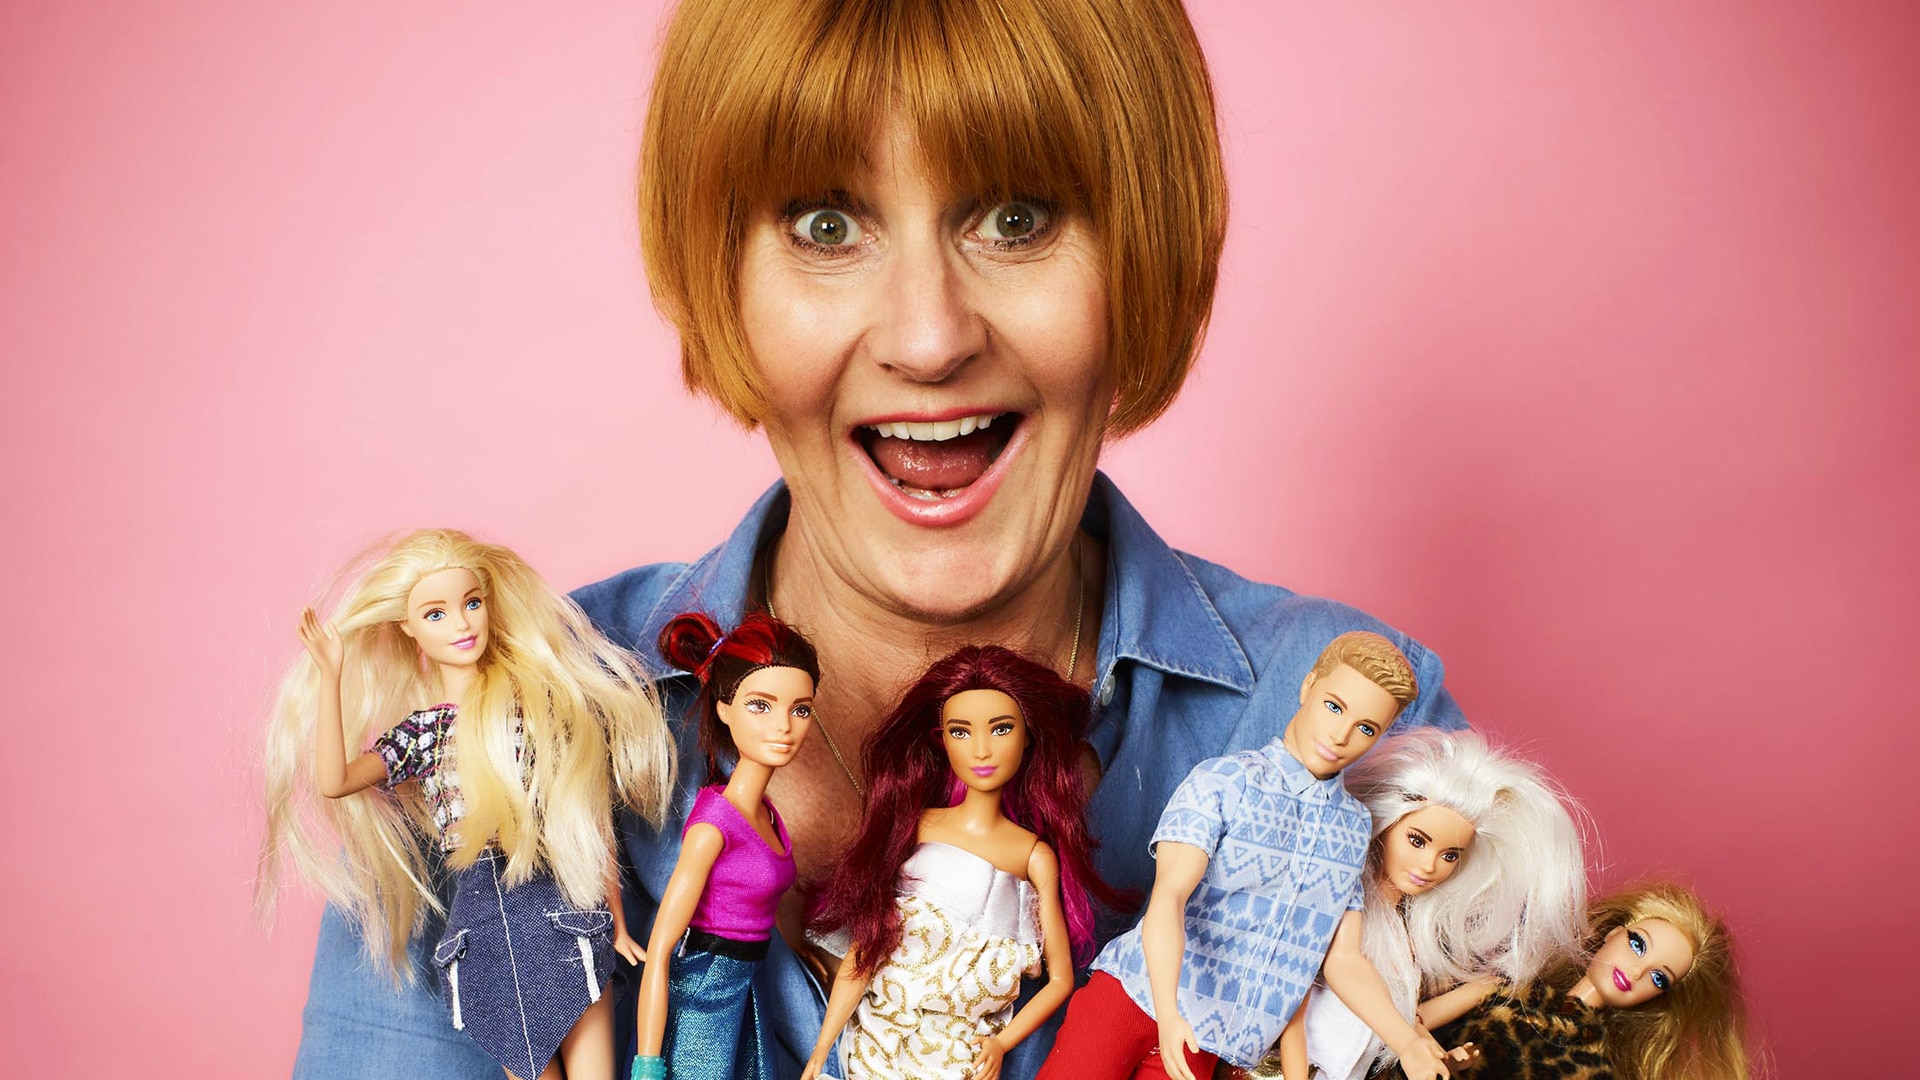 Barbie The Most Famous Doll in the World All 4